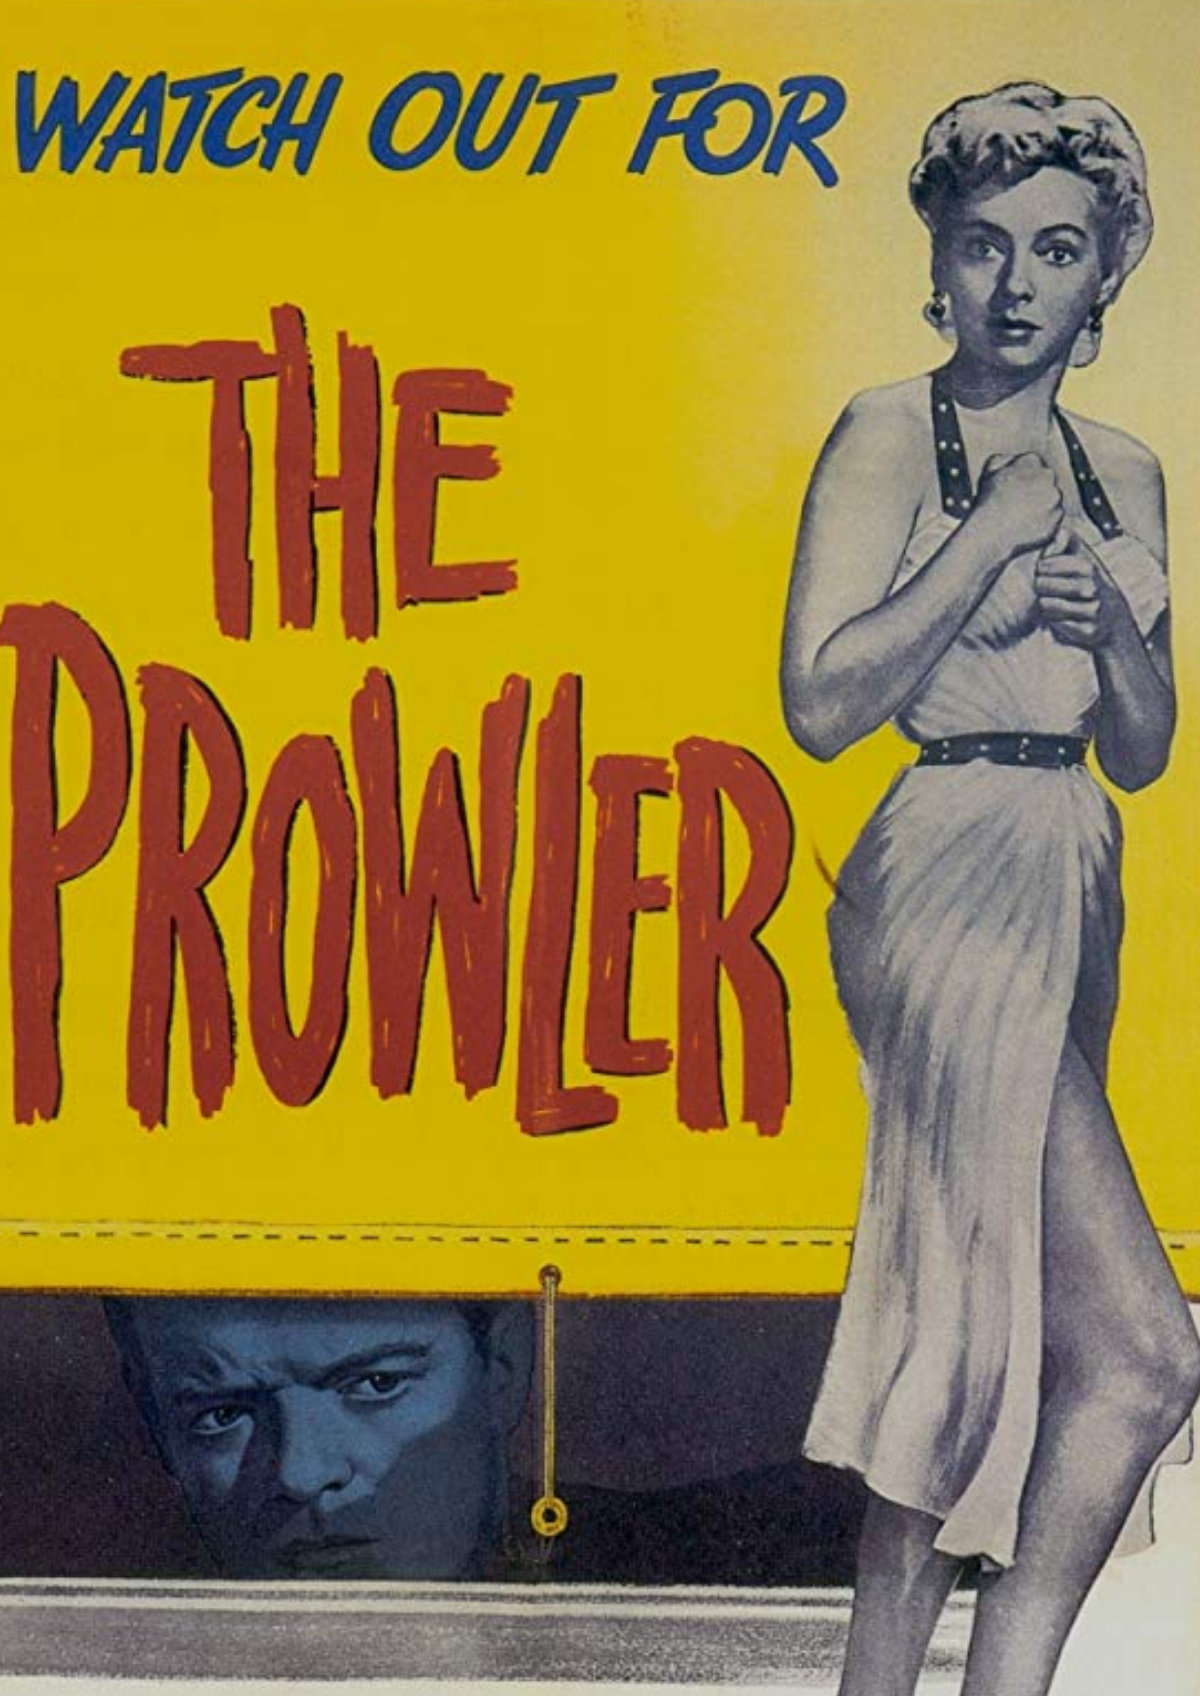 'The Prowler' movie poster